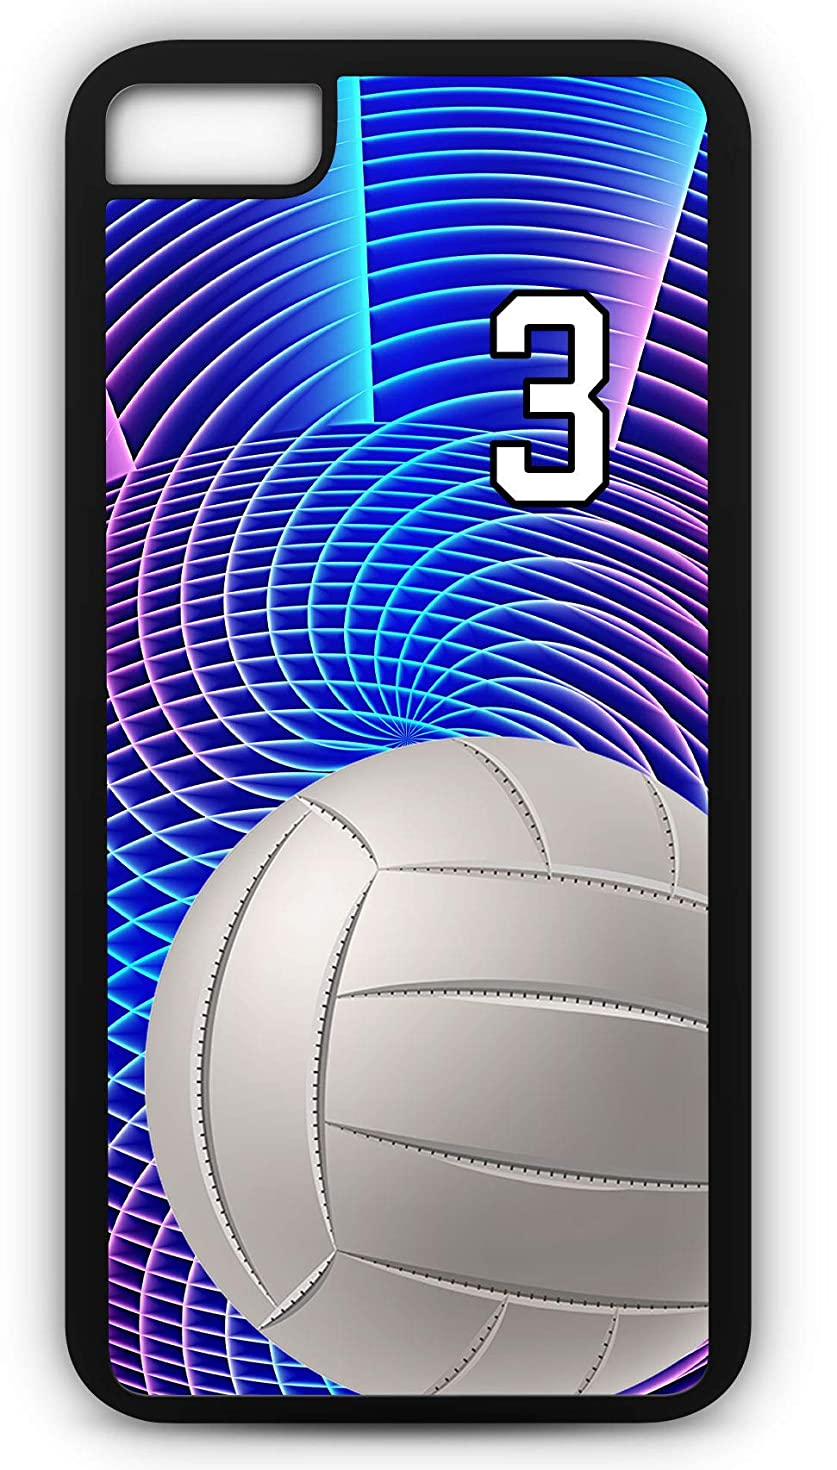 iPhone 8 Case Volleyball V049Z Choice of Any Personalized Name or Number Tough Phone Case by TYD Designs in White Plastic and Black Rubber with Team Jersey Number 3